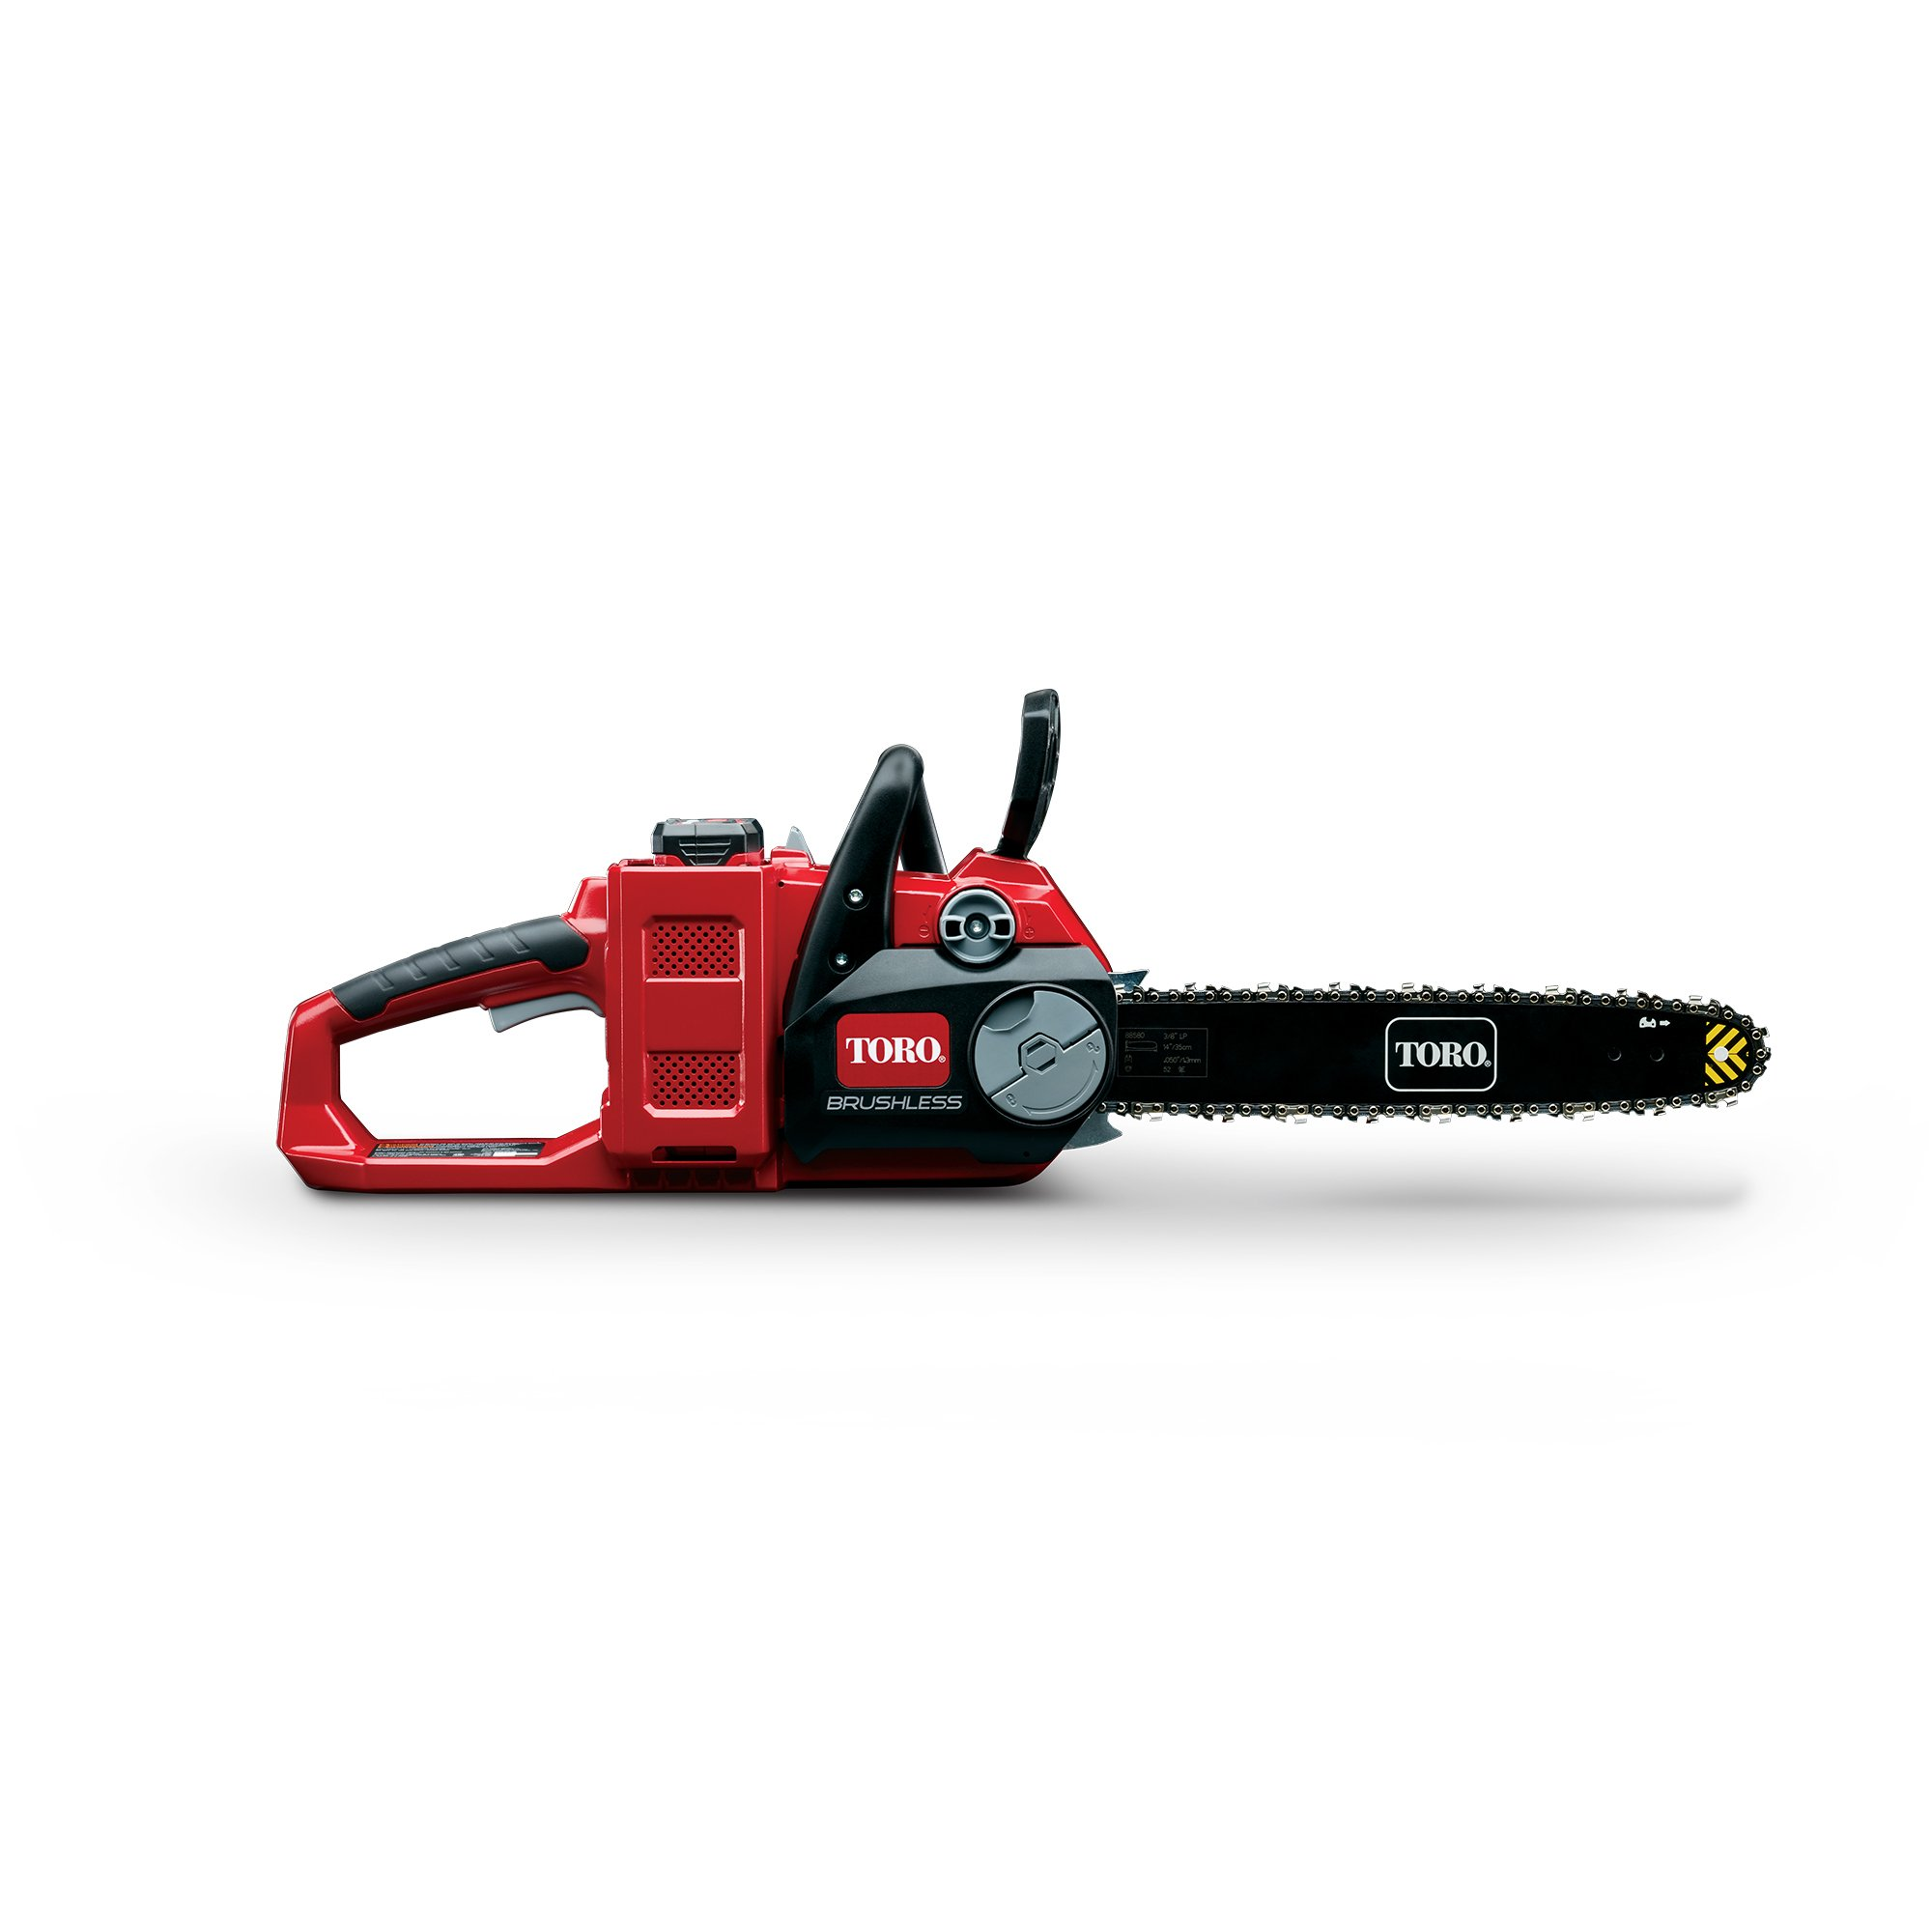 """Toro PowerPlex 51880 Brushless 40V MAX Lithium Ion 14"""" Cordless Chainsaw, 2.5 Ah Battery & Charger Included"""